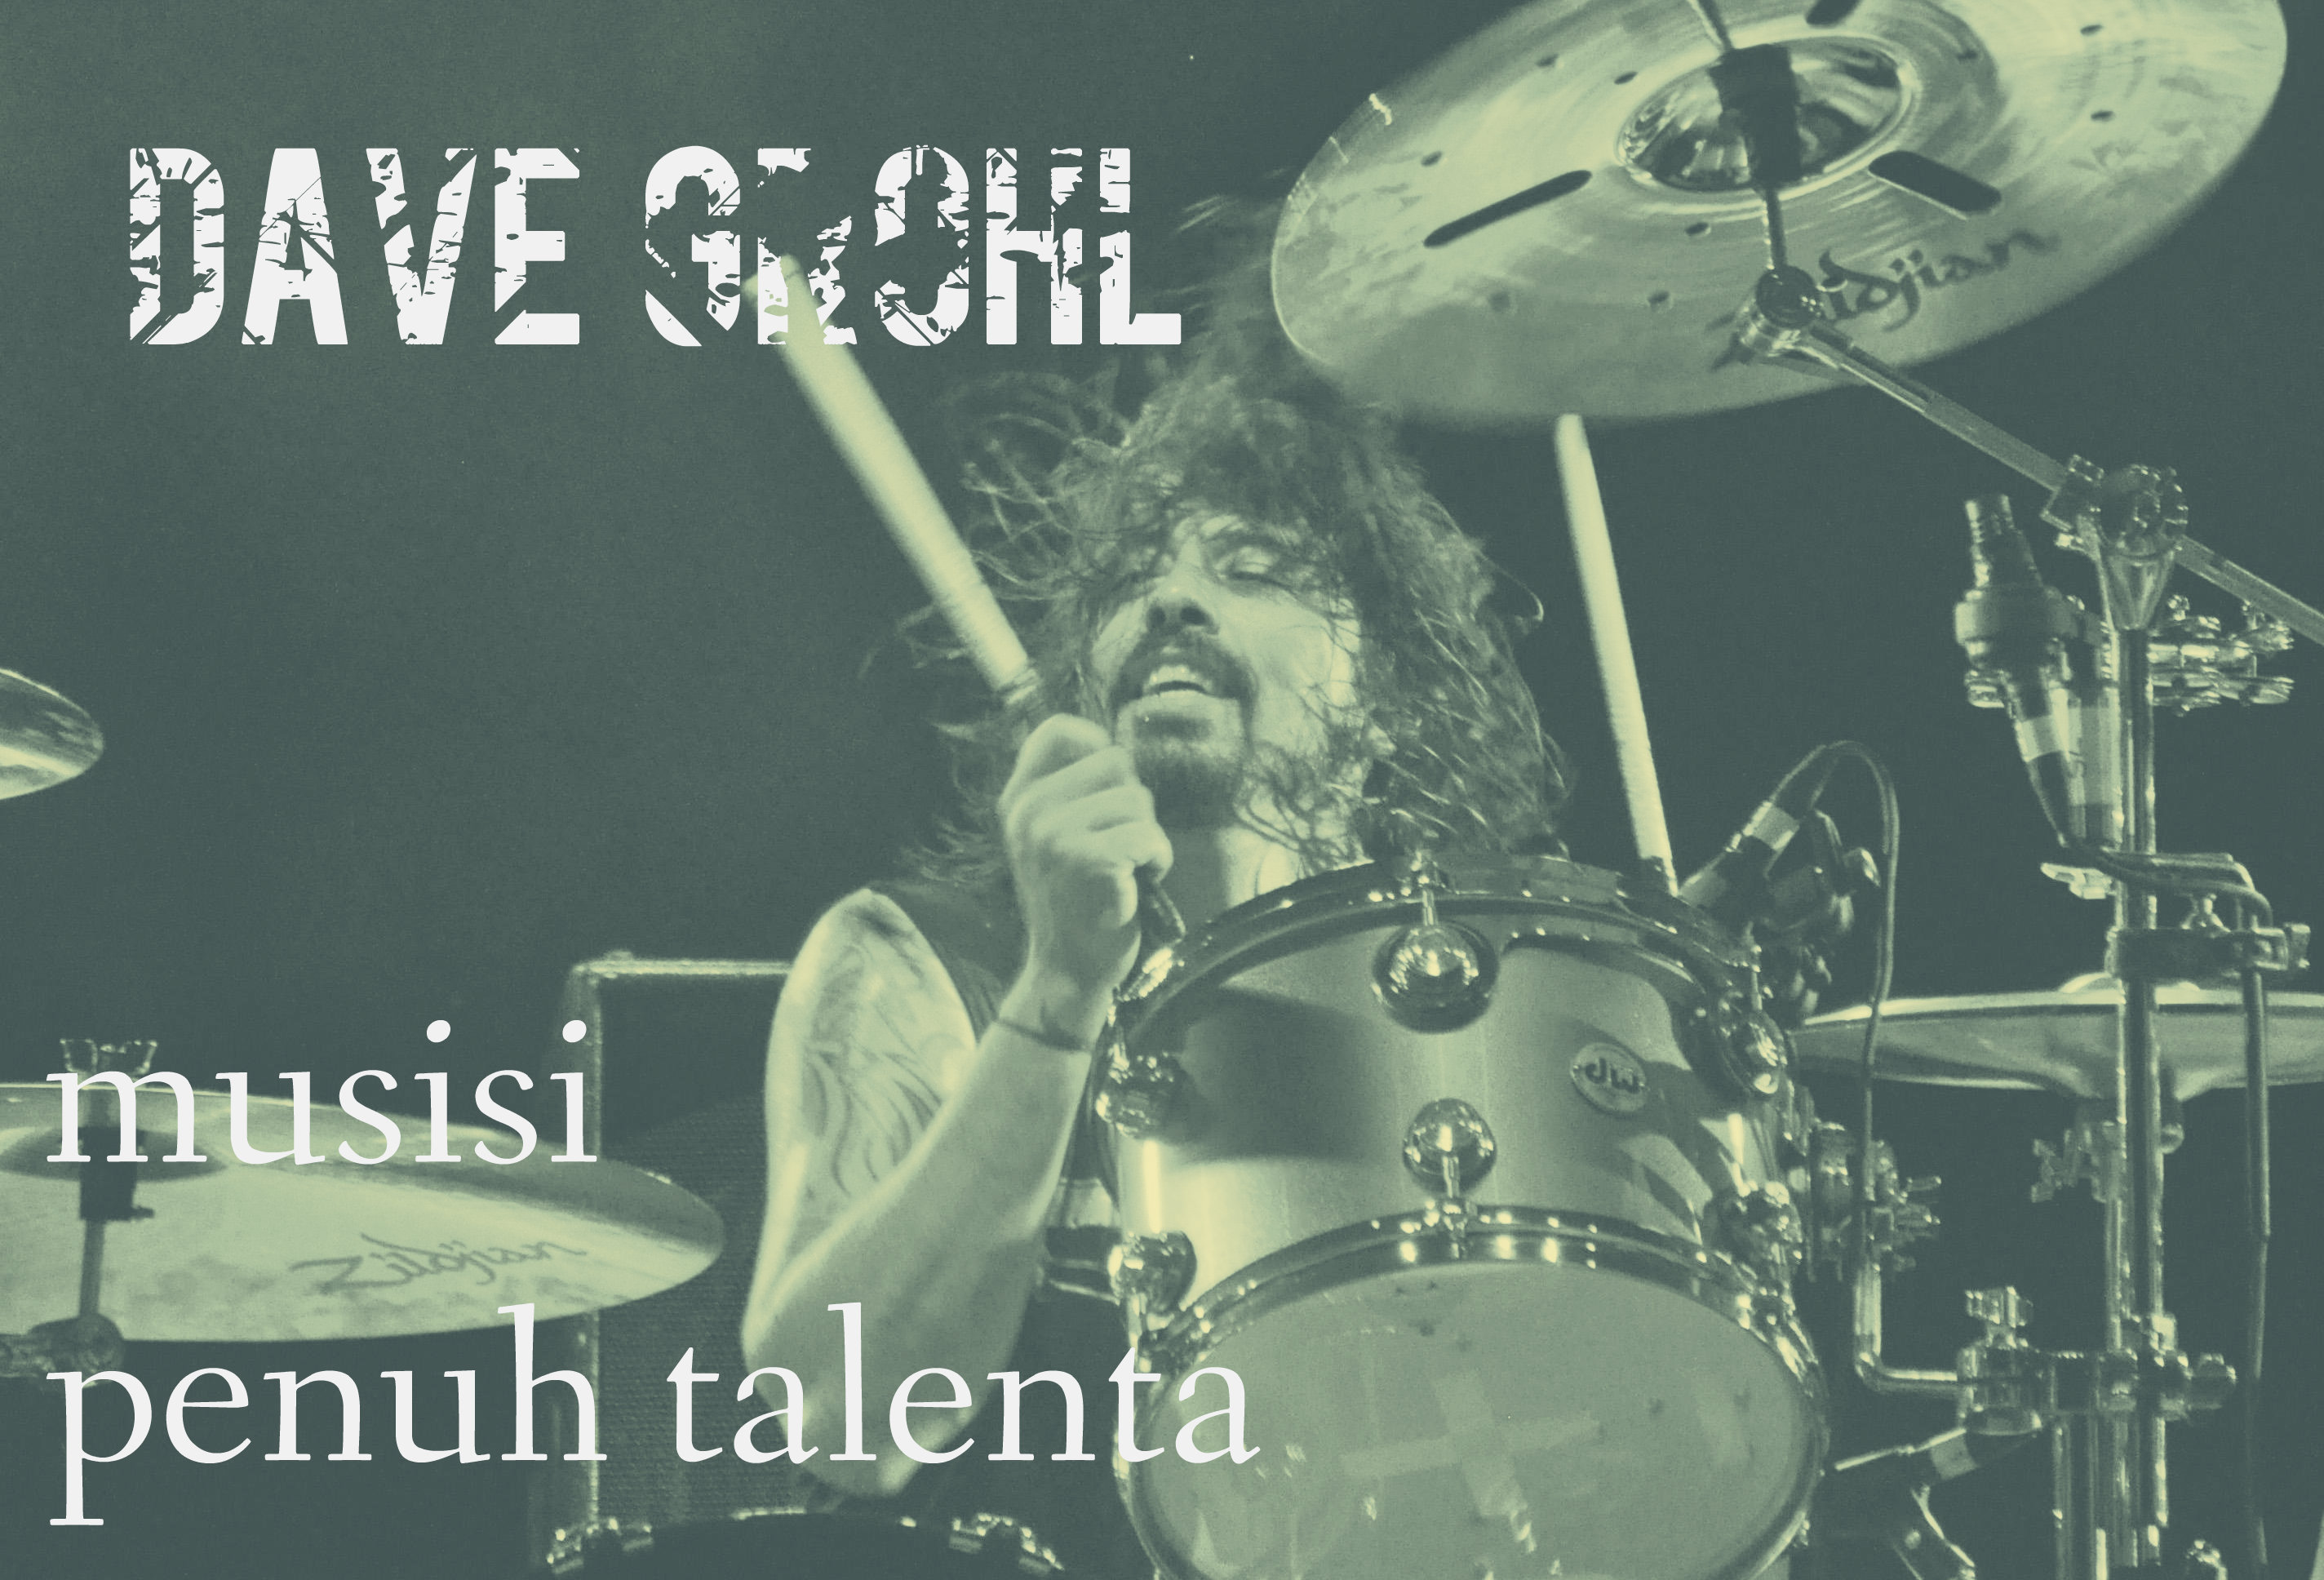 Dave Grohl, Musisi Penuh Talenta!